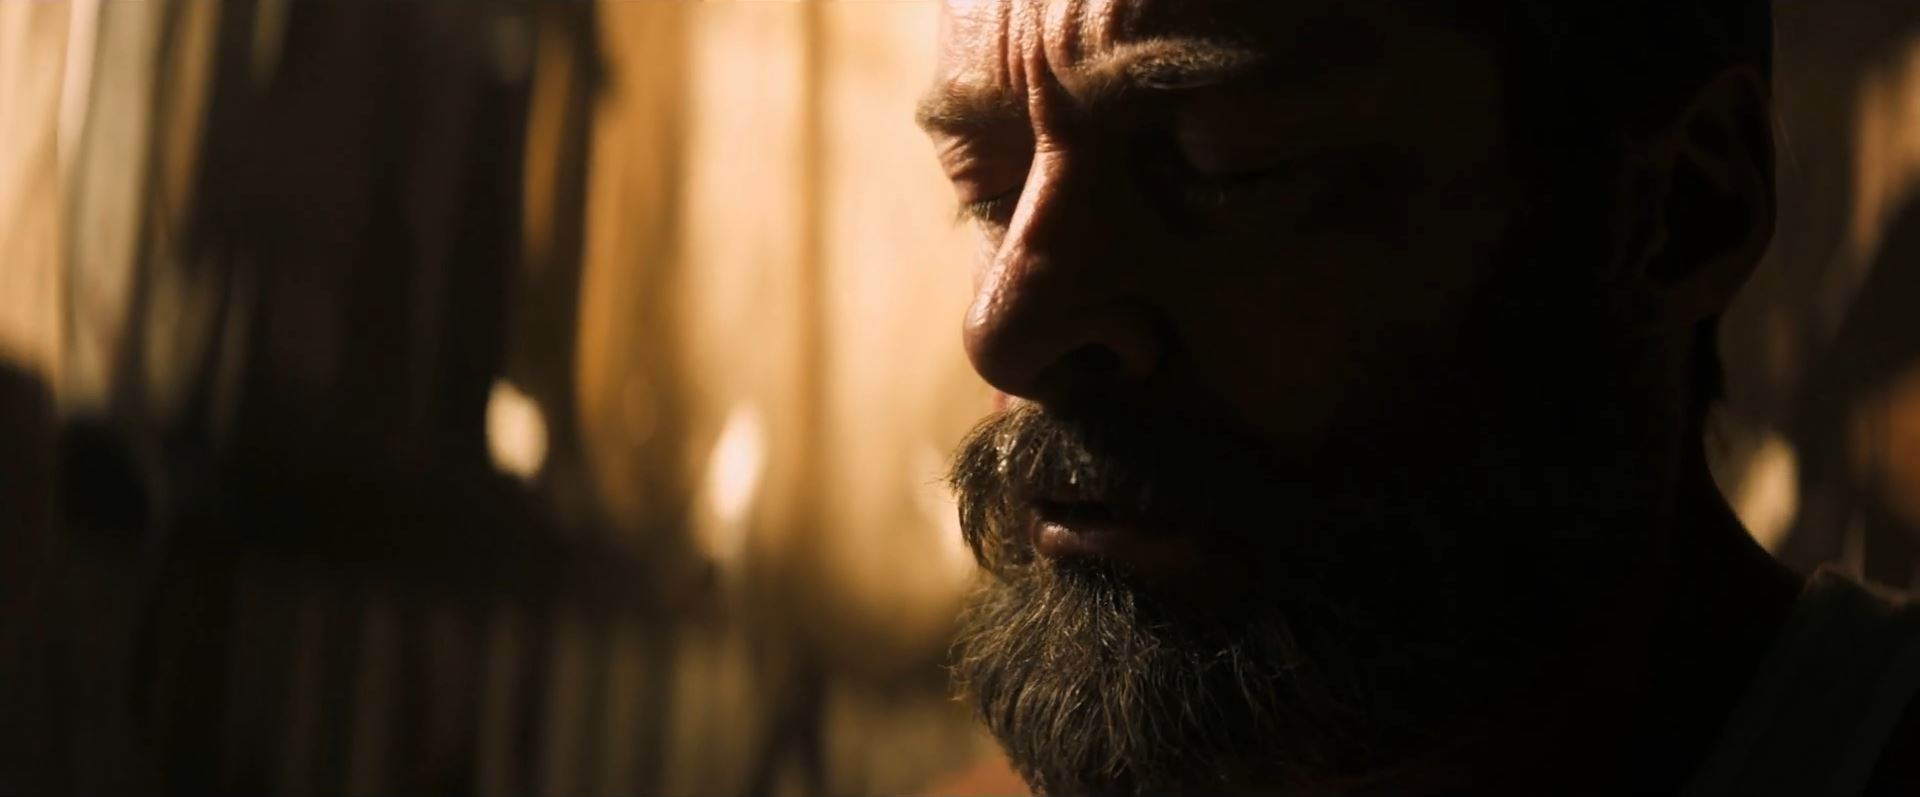 Hugh Jackman as Wolverine in Logan - Super Bowl Trailers